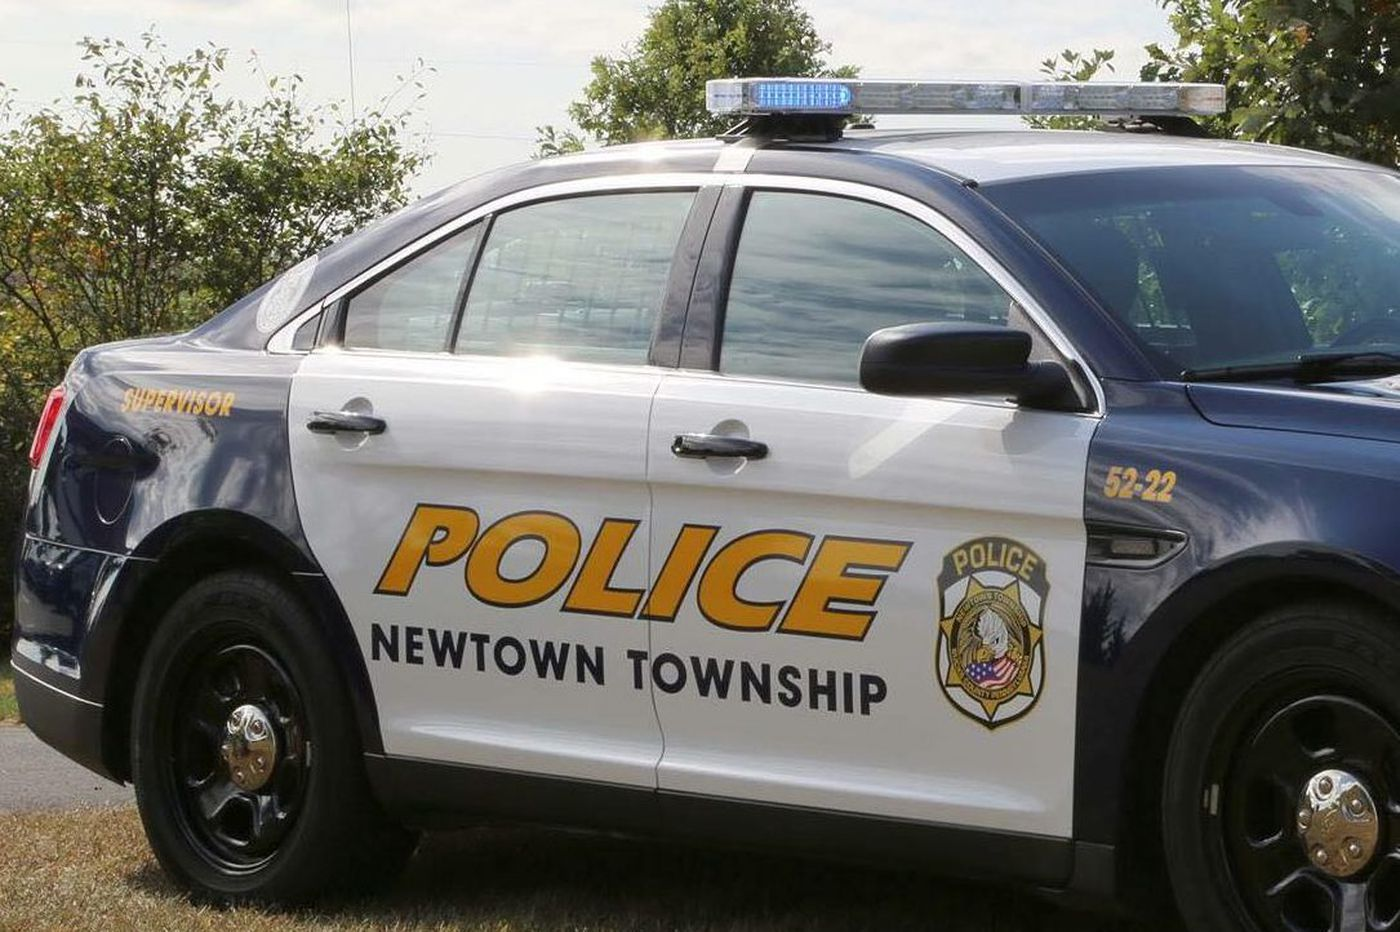 Bucks college campus in Newtown closed Wednesday due to threat